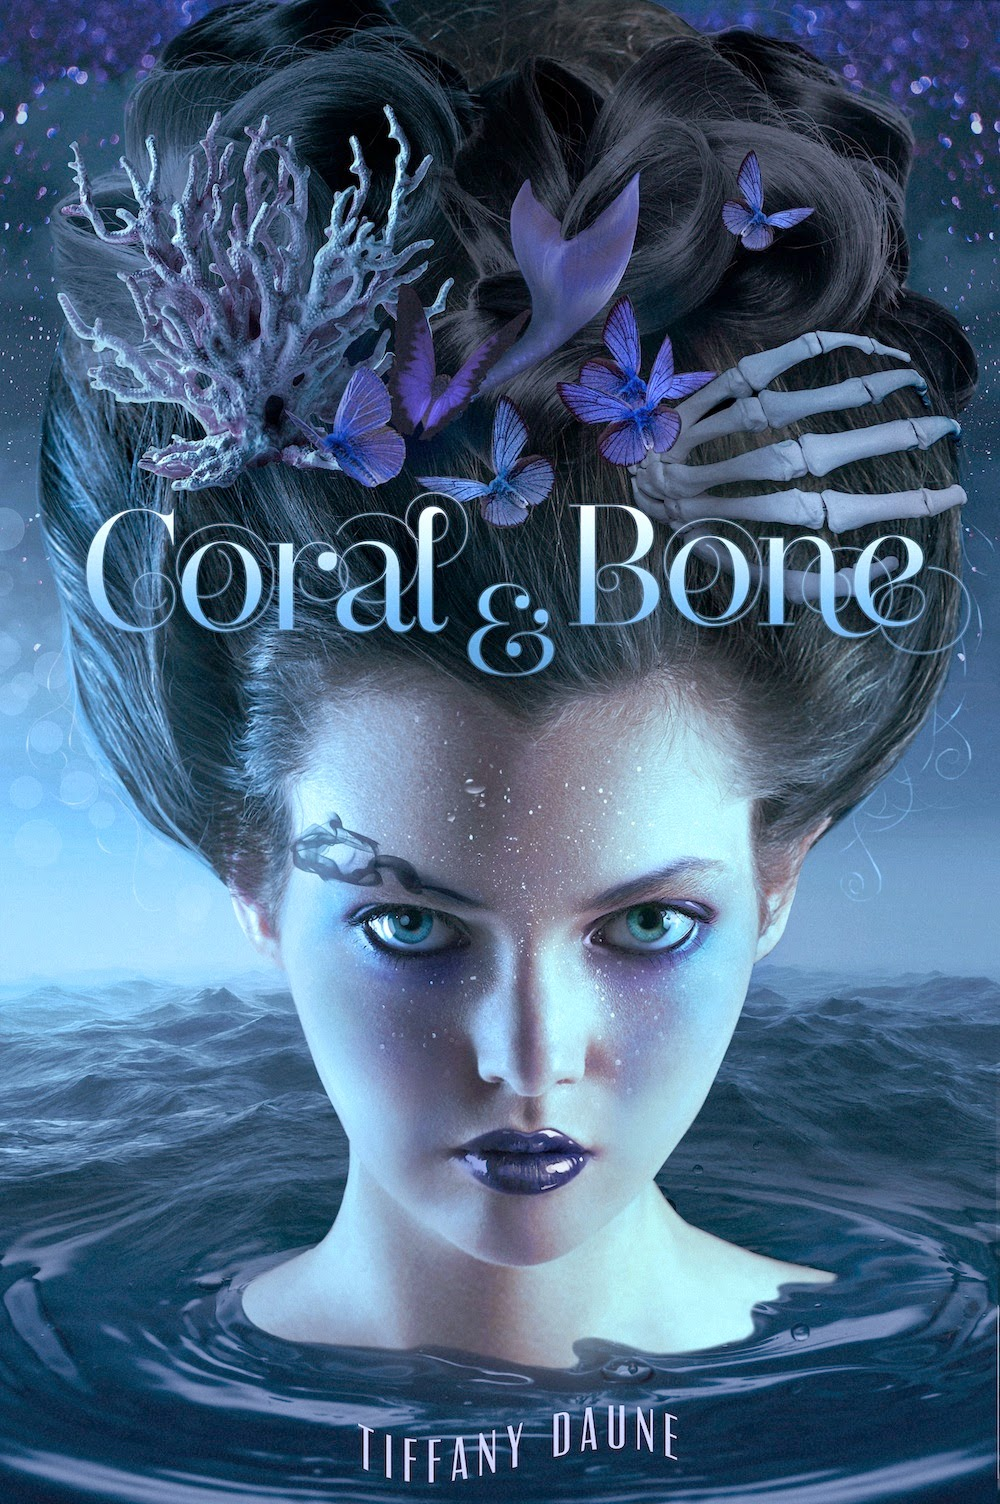 https://www.goodreads.com/book/show/21826050-coral-bone